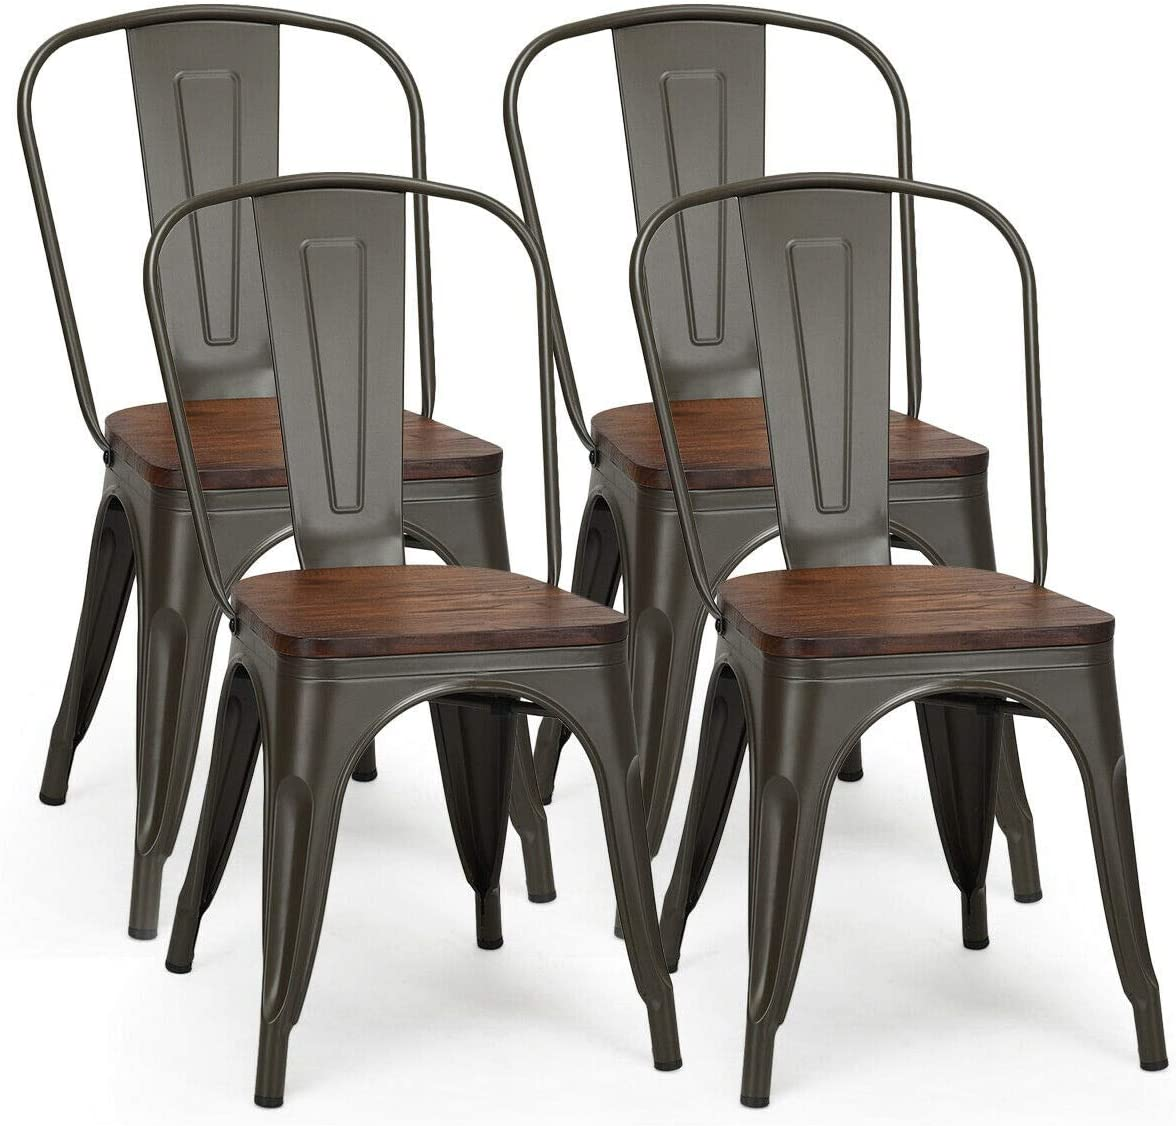 Costway Tolix Style Dining Chairs Industrial Metal Stackable Cafe Side Chair W Wood Seat Set Of 4 Gun Amazon Ca Home